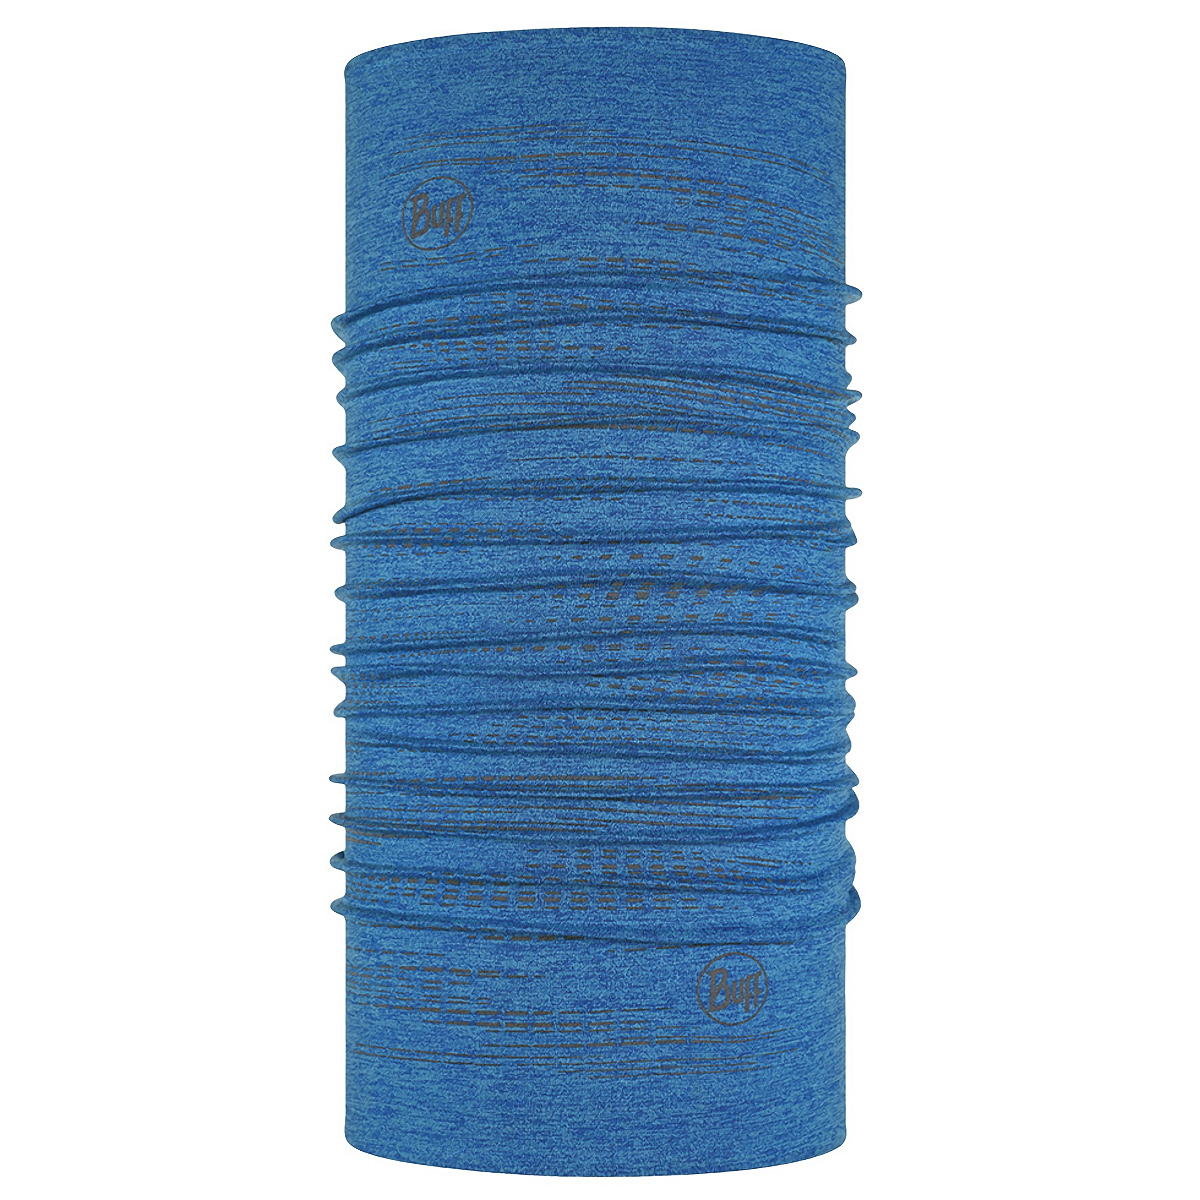 Buff Dryflx Headband - Color: Olympian Blue, Olympian Blue, large, image 1